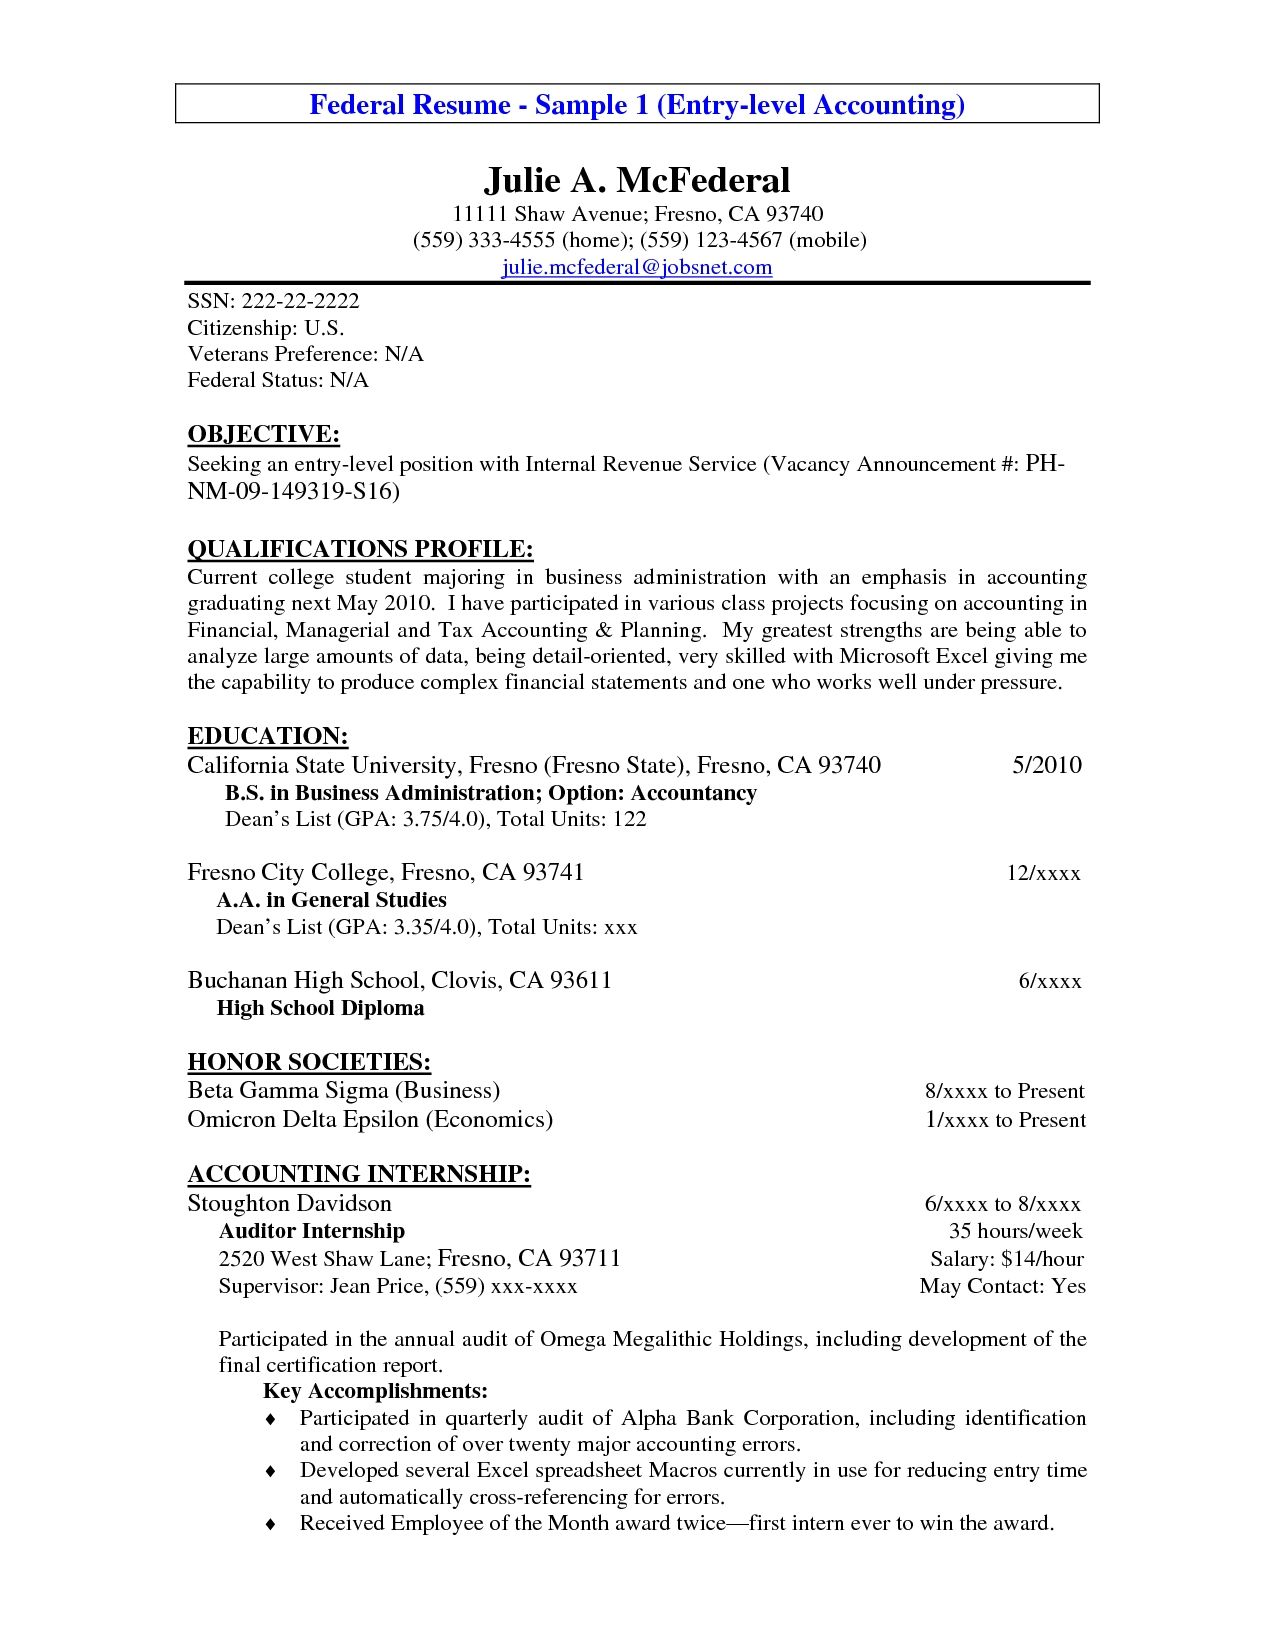 Accountant Resume Template Entry Level Resume Example Entry Level Accounting Resume Sample